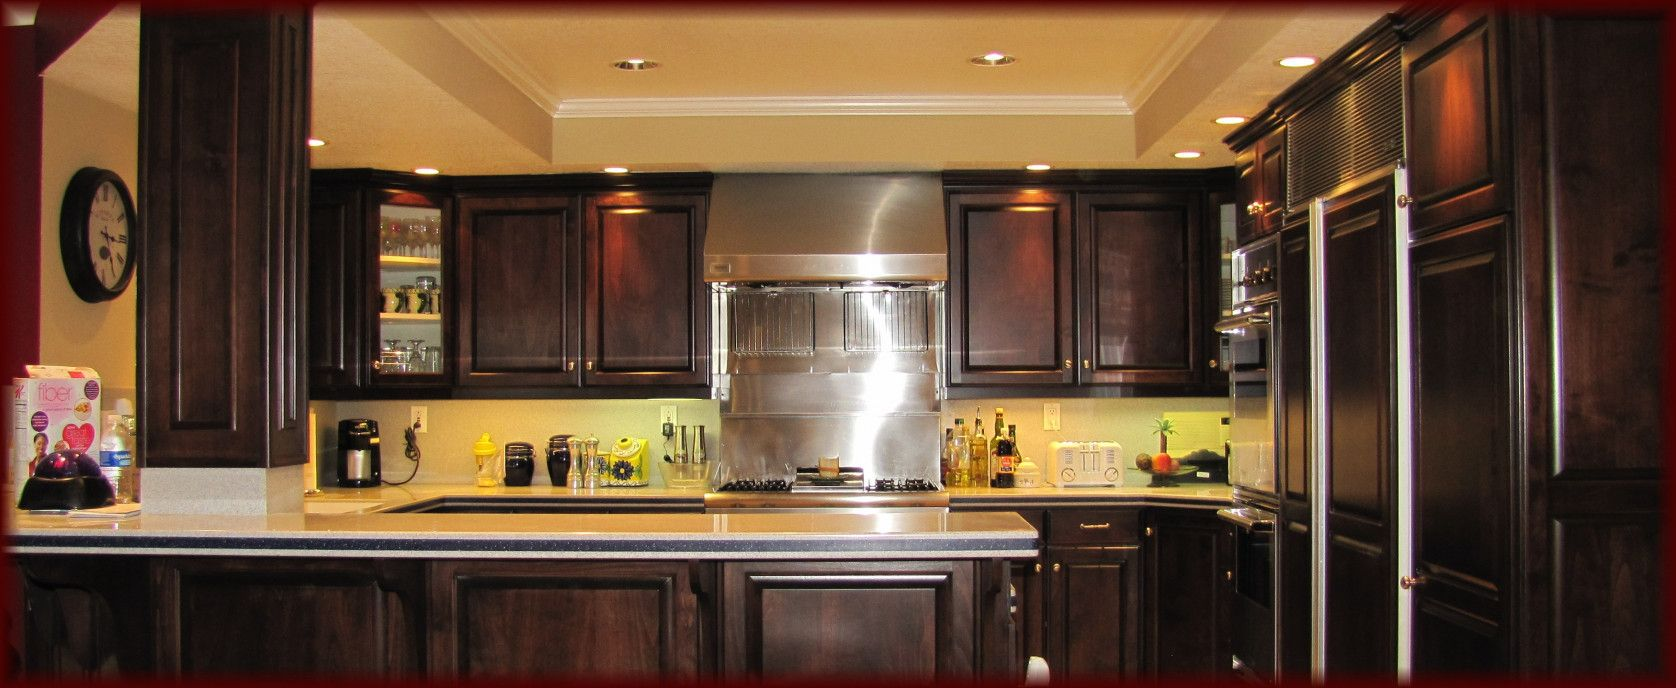 55+ How to Refinish Wood Kitchen Cabinets - Kitchen ...